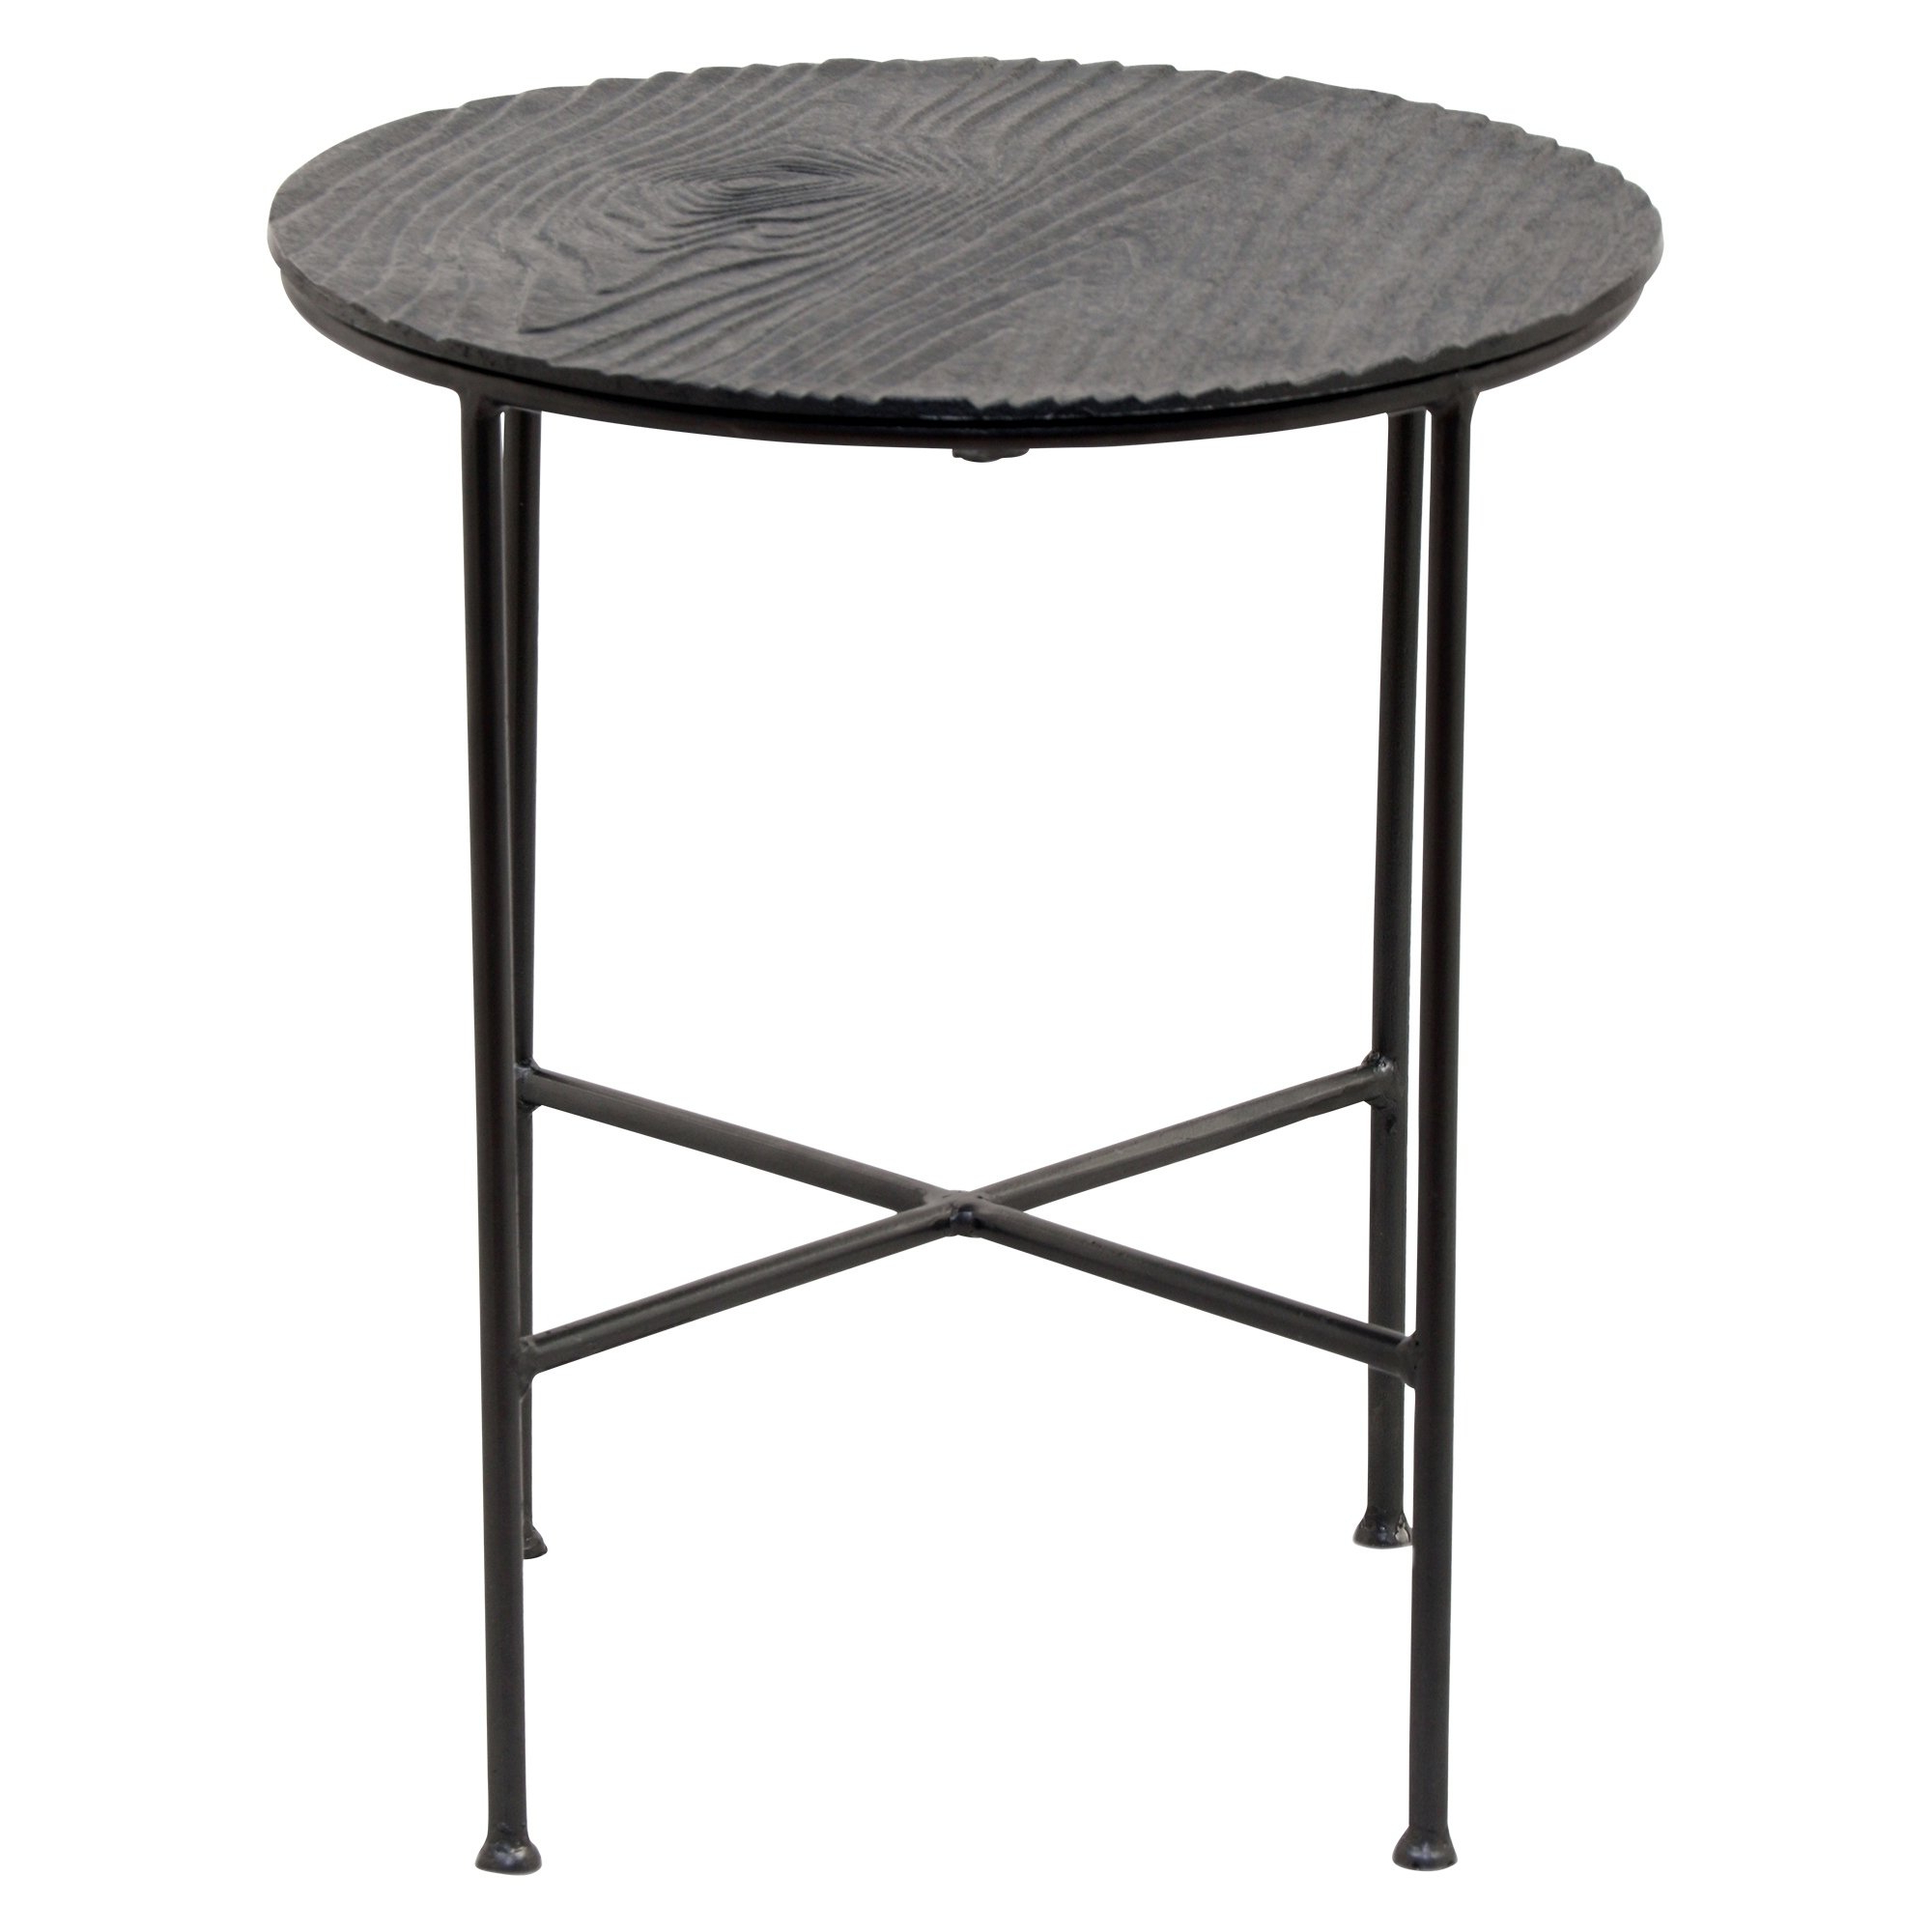 Shop Renwil Bale Grey Aluminum Round Accent Table – Free Shipping In Popular Bale Rustic Grey Round Cocktail Tables With Storage (View 7 of 20)